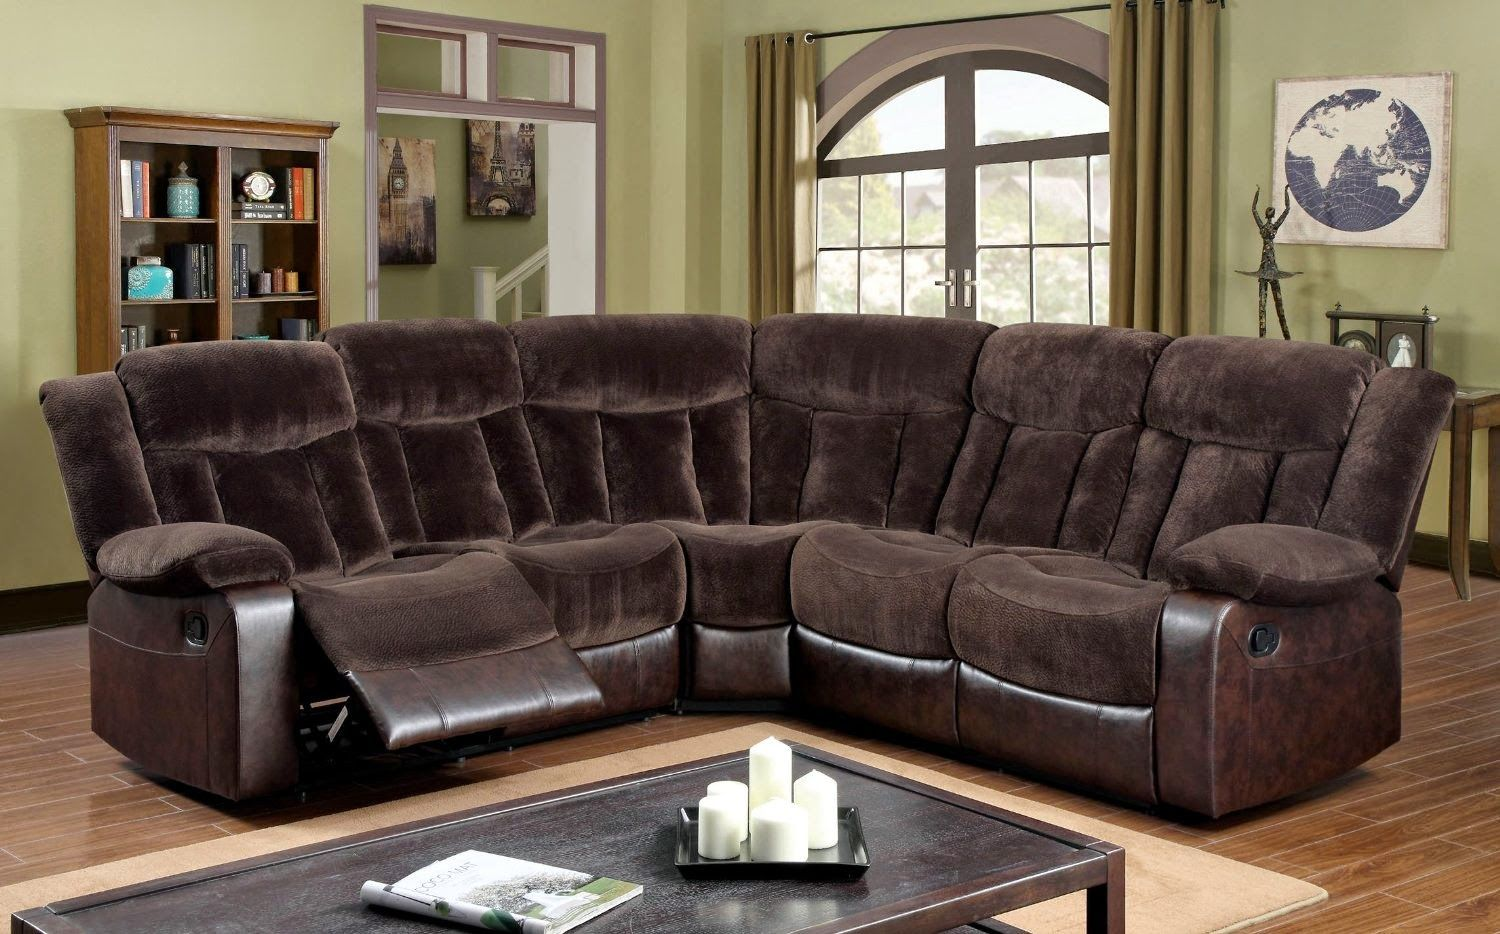 amazing leather sectional sofa with recliner model-Cool Leather Sectional sofa with Recliner Design